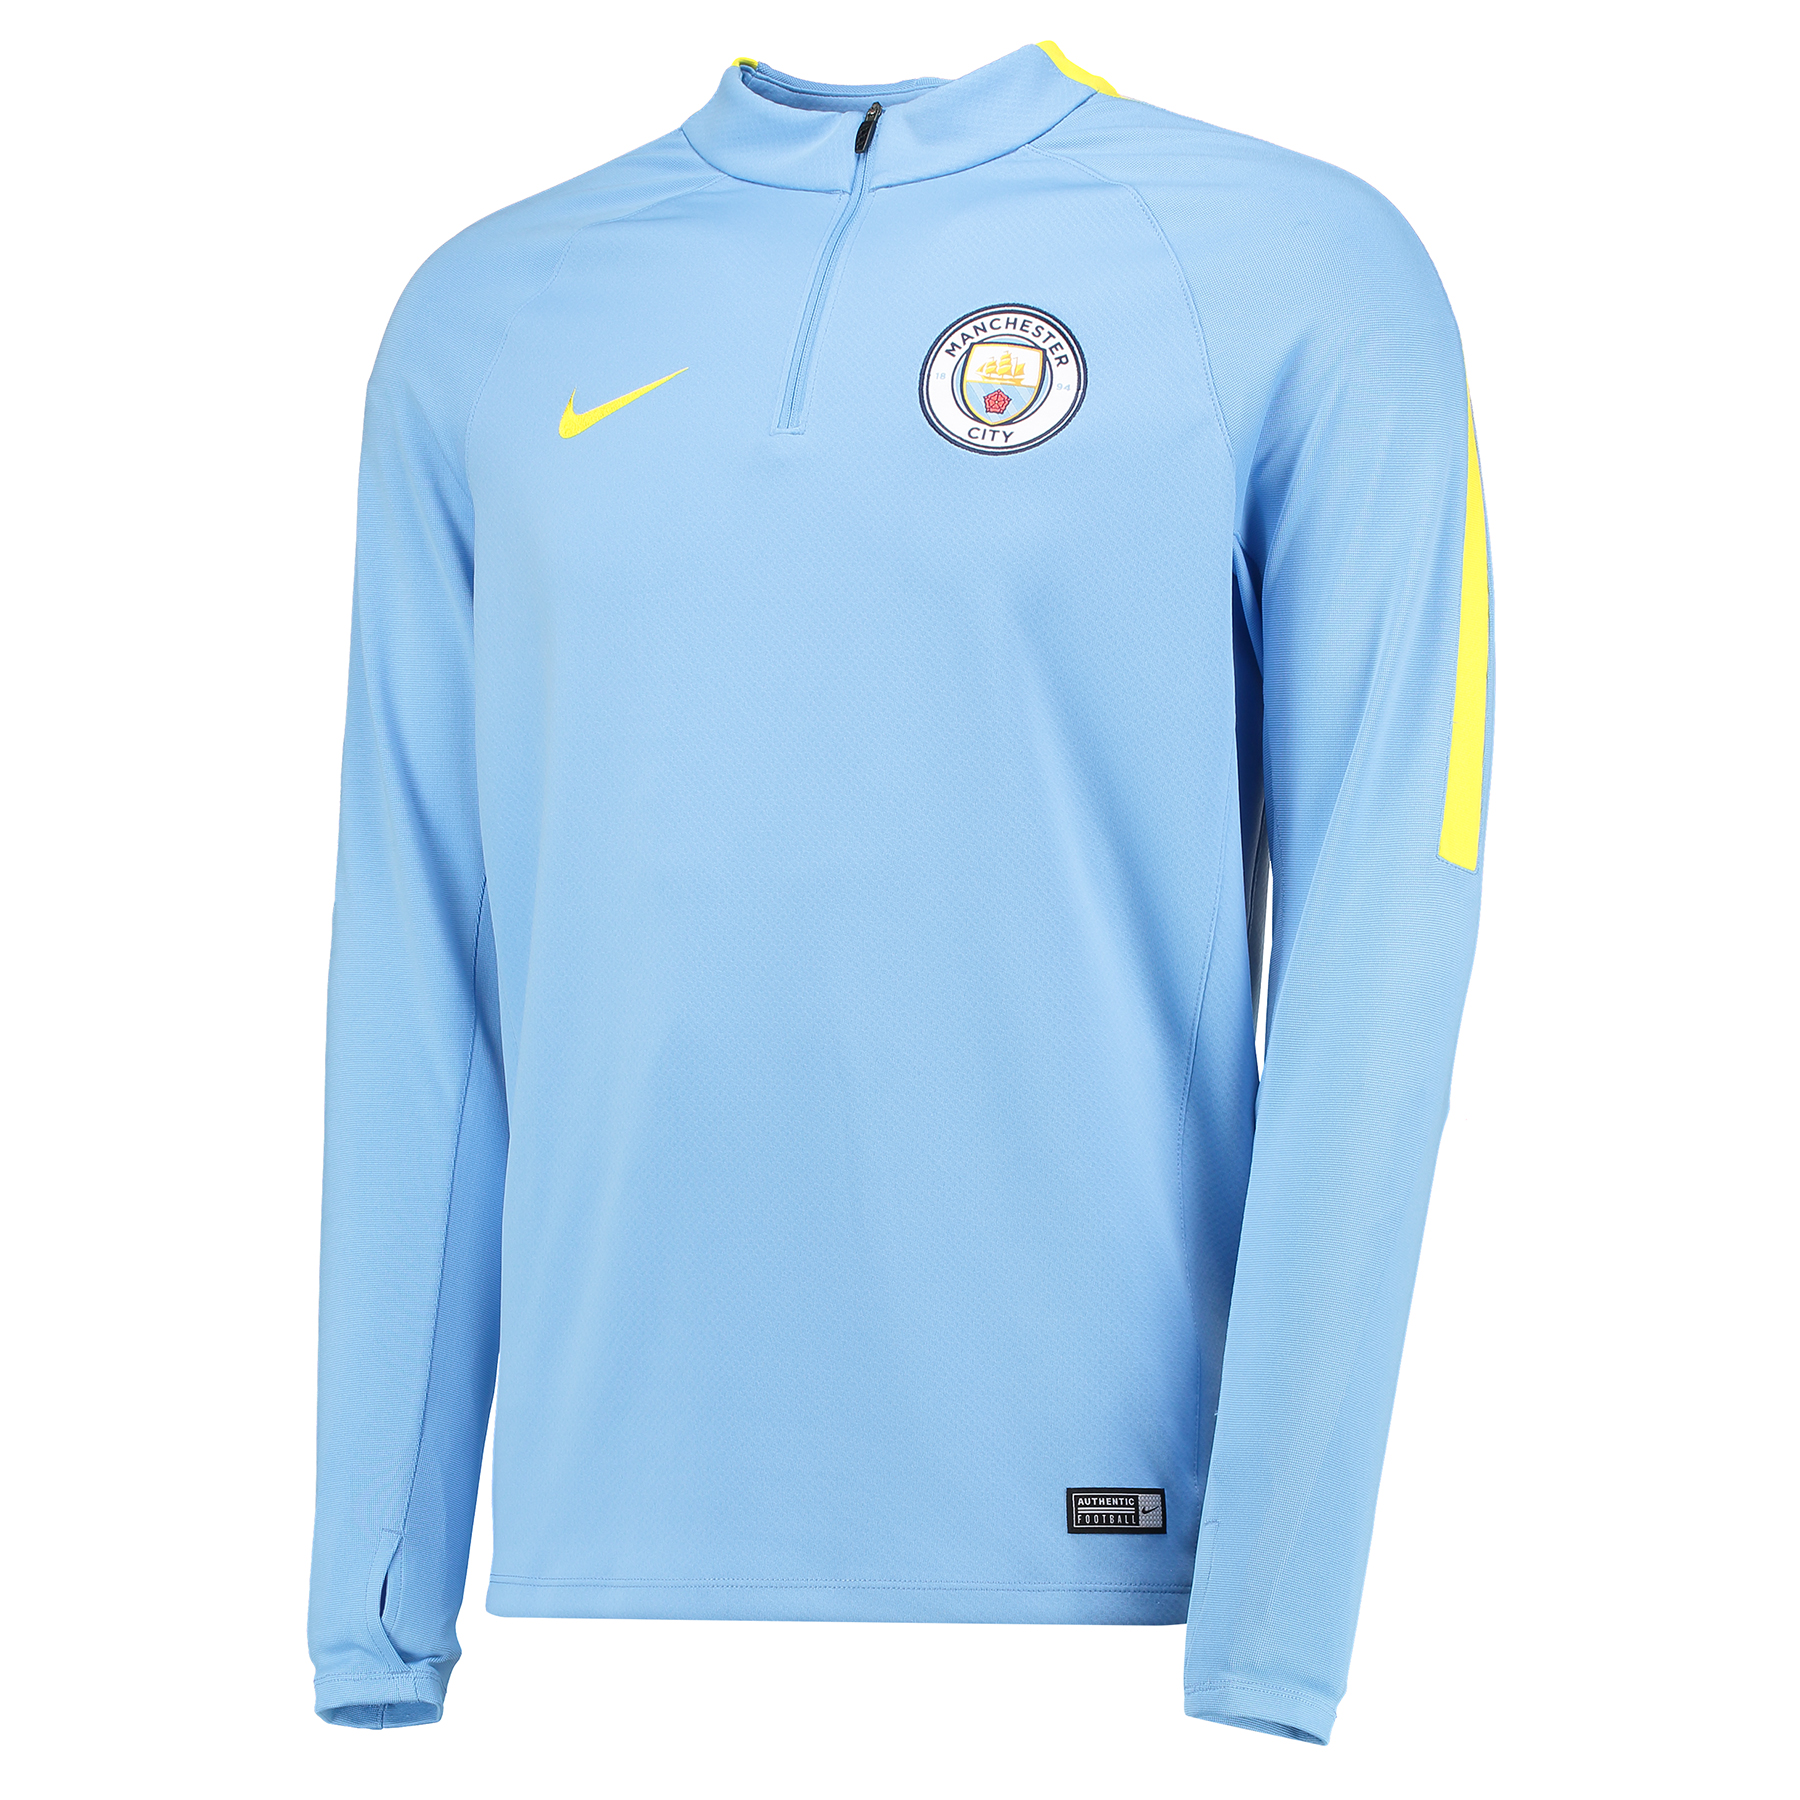 Manchester City Squad Drill Top - Light Blue - Long Sleeve